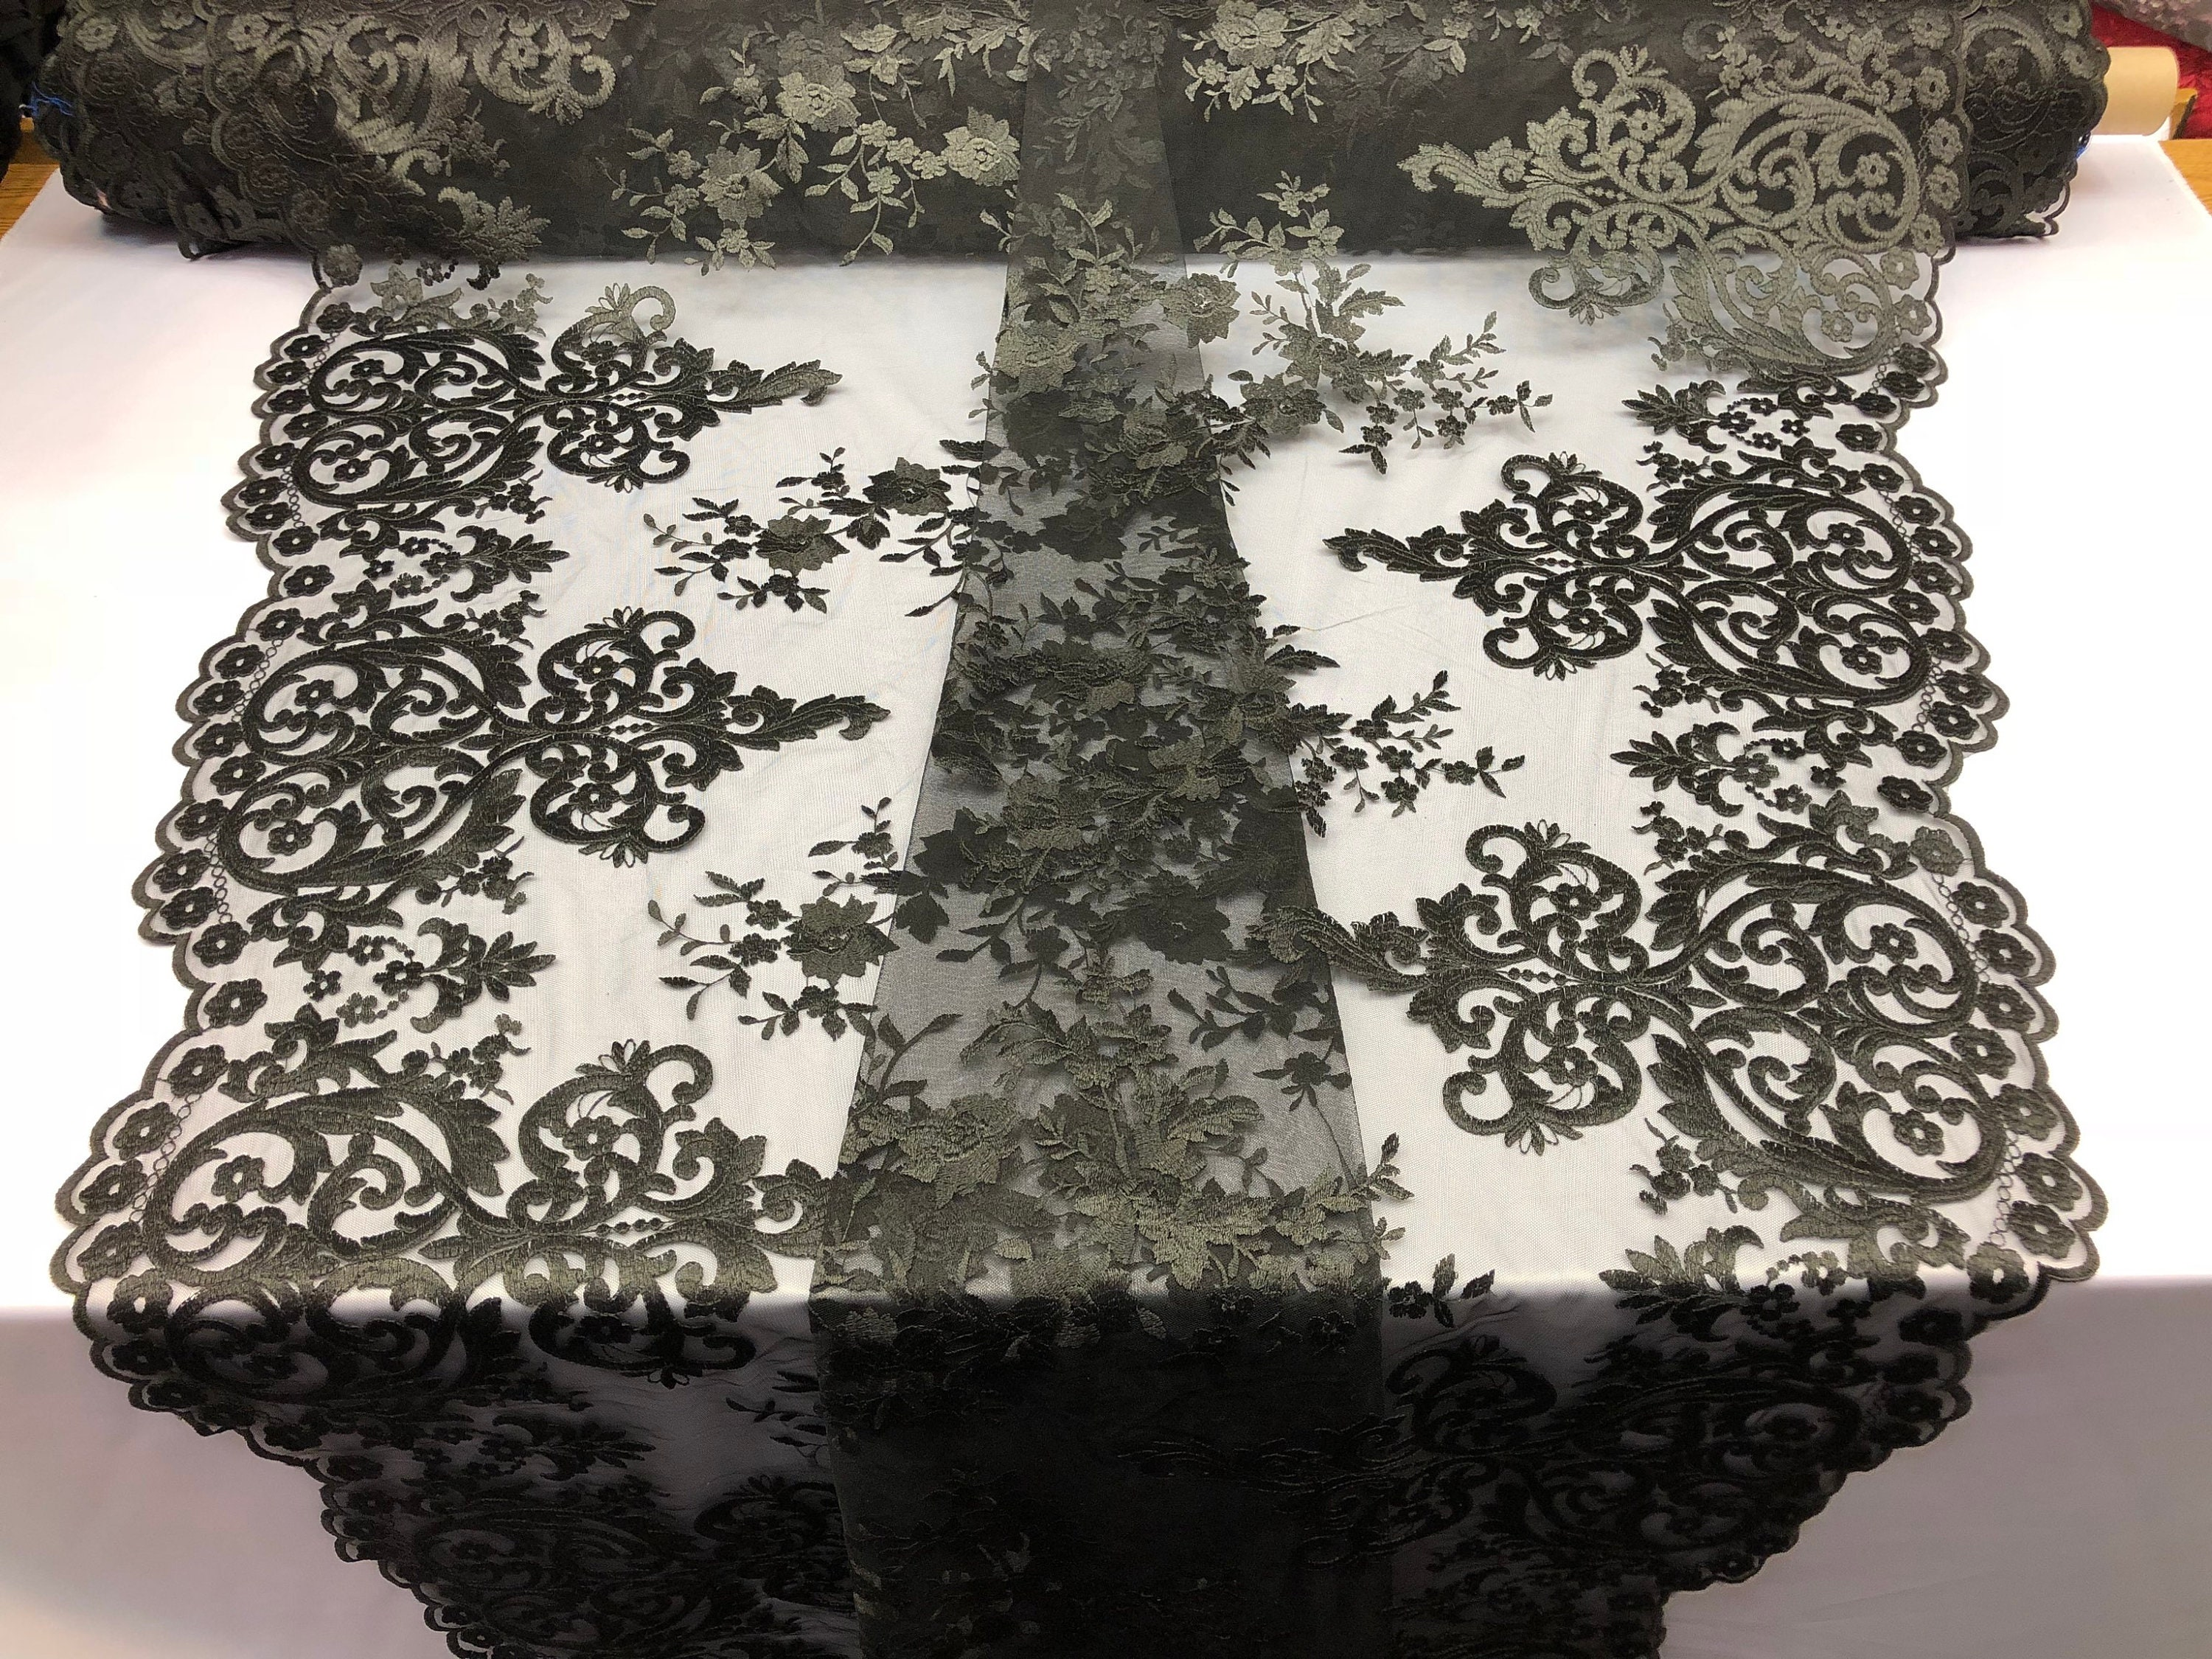 Embroidered 2 way Stretch Floral Black For Dress By The Yard Lace Fabric